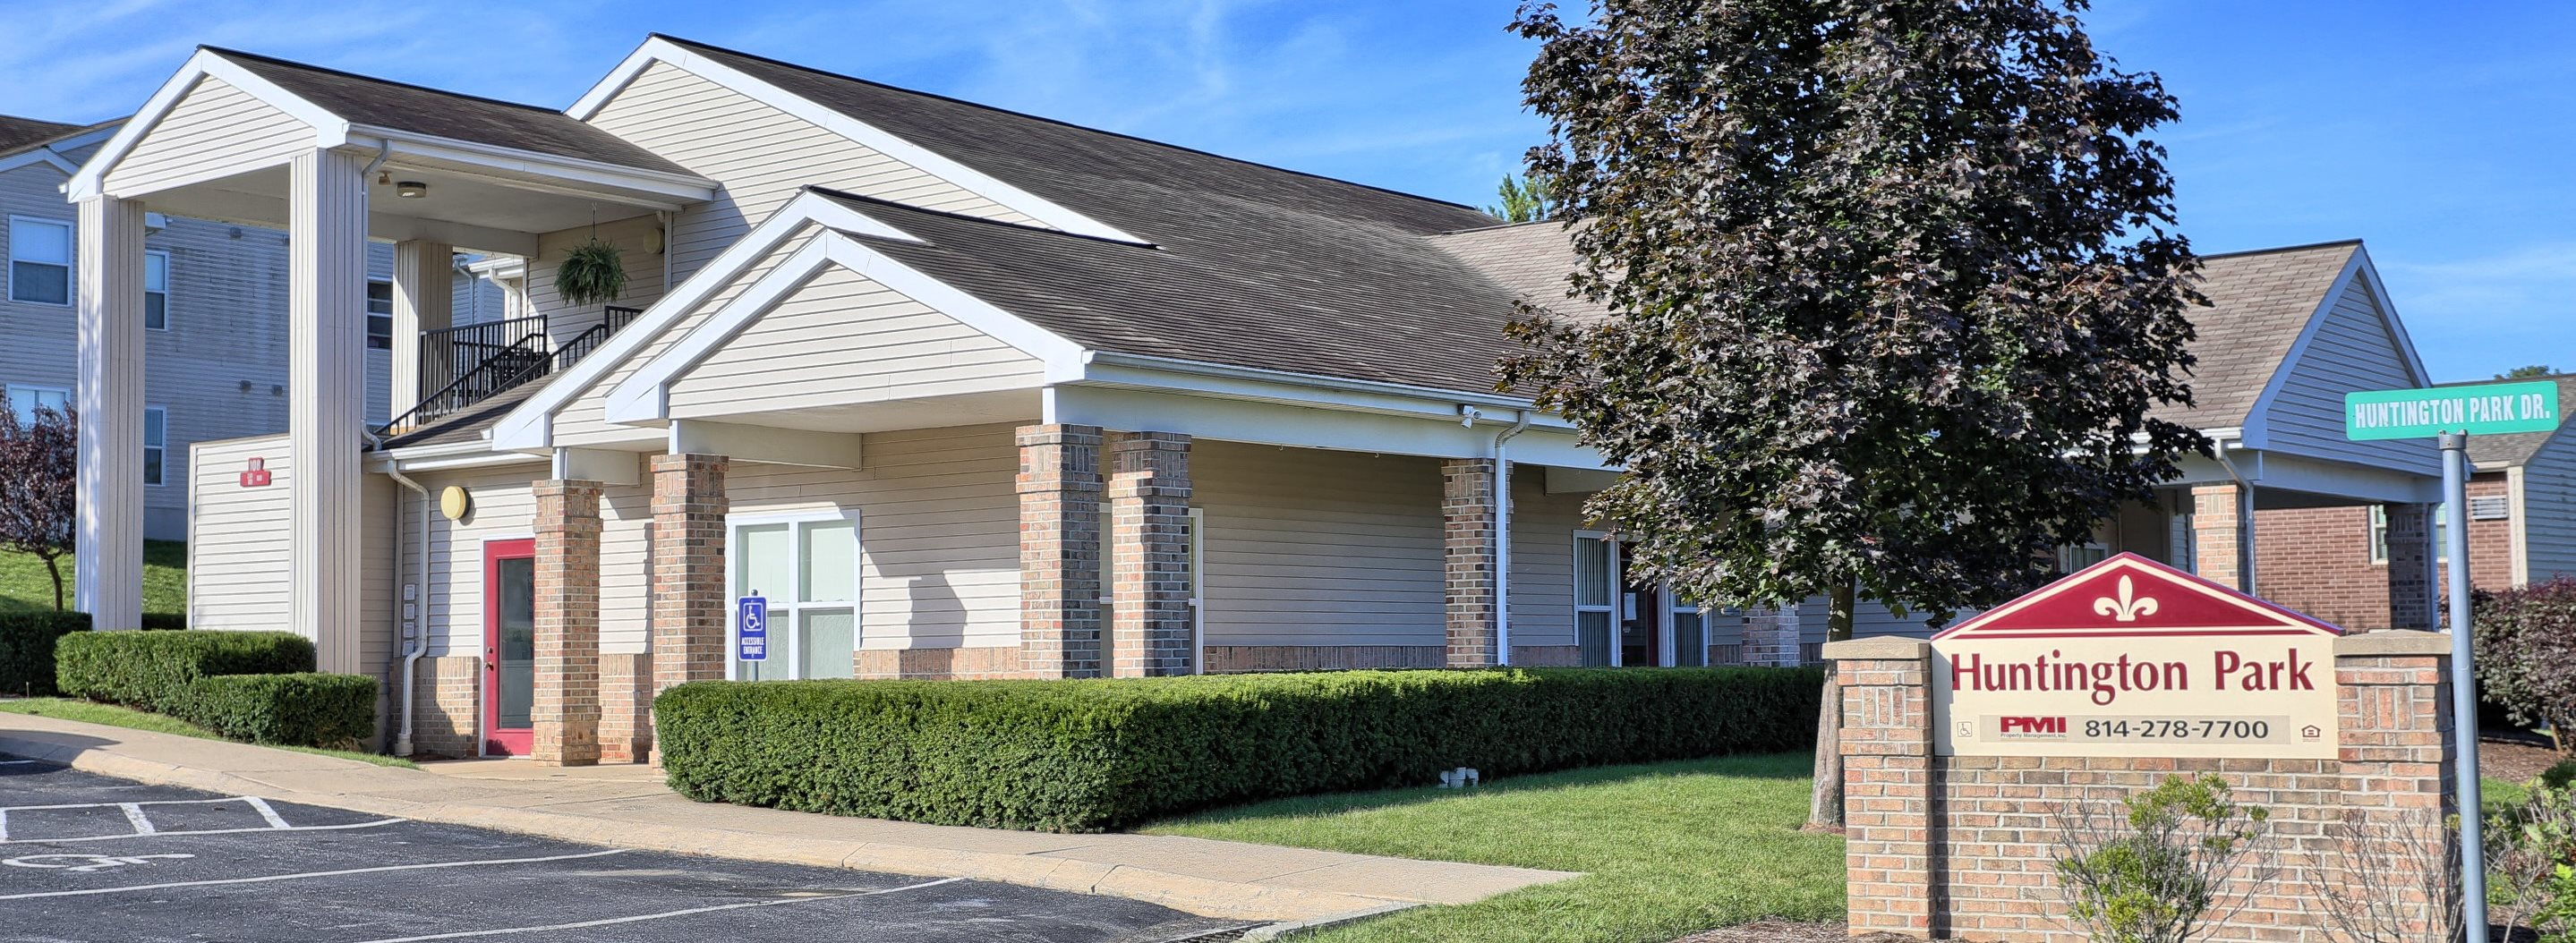 Penn State Apartments in Boalsburg, PA | Huntington Park Apartments | Property Management, Inc.